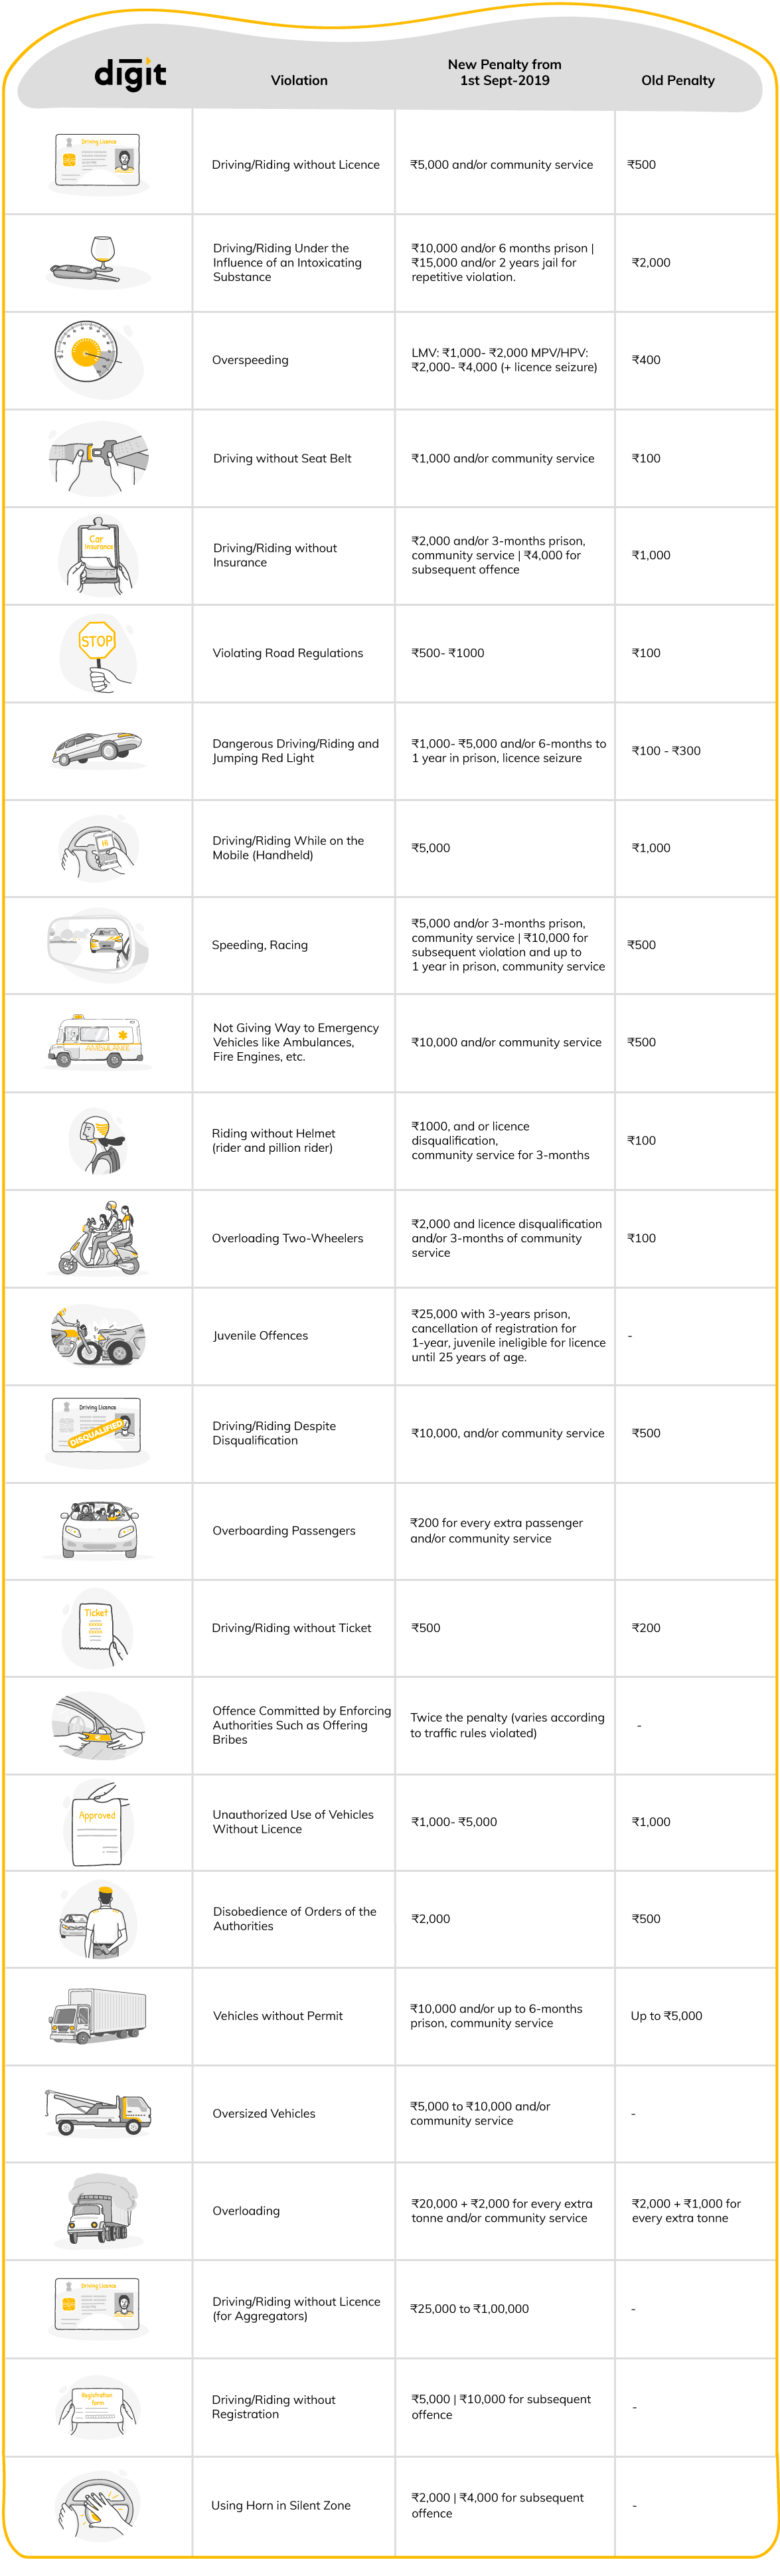 List of Traffic Fines 2019 Info graphic